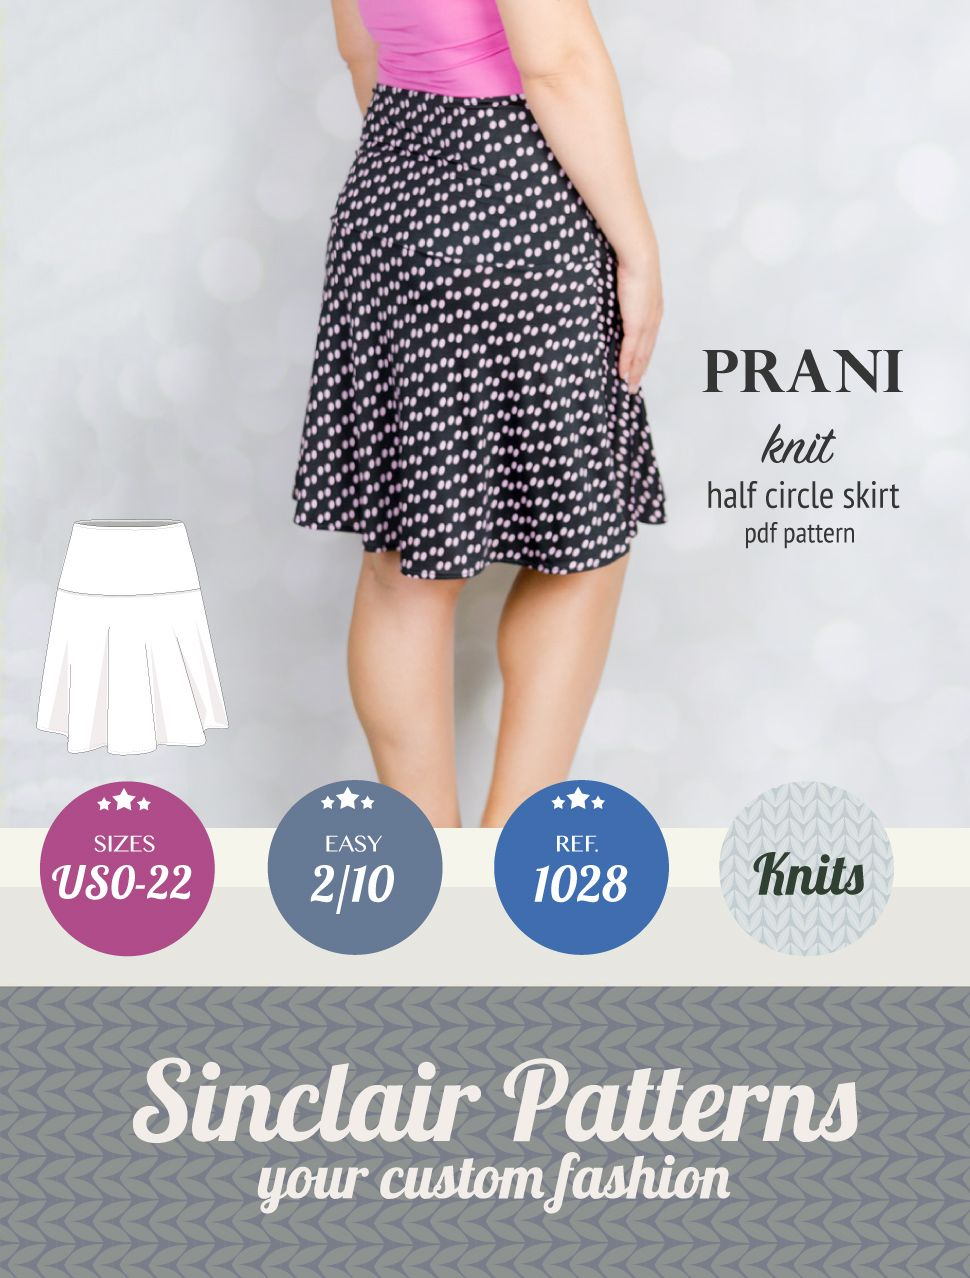 Pdf sewing patterns for women half circle skirt pattern pdf pdf sewing patterns for women half circle skirt pattern pdf knit skirt best sewing pattern with pdf sewing tutorial xs xxl plus size jeuxipadfo Image collections